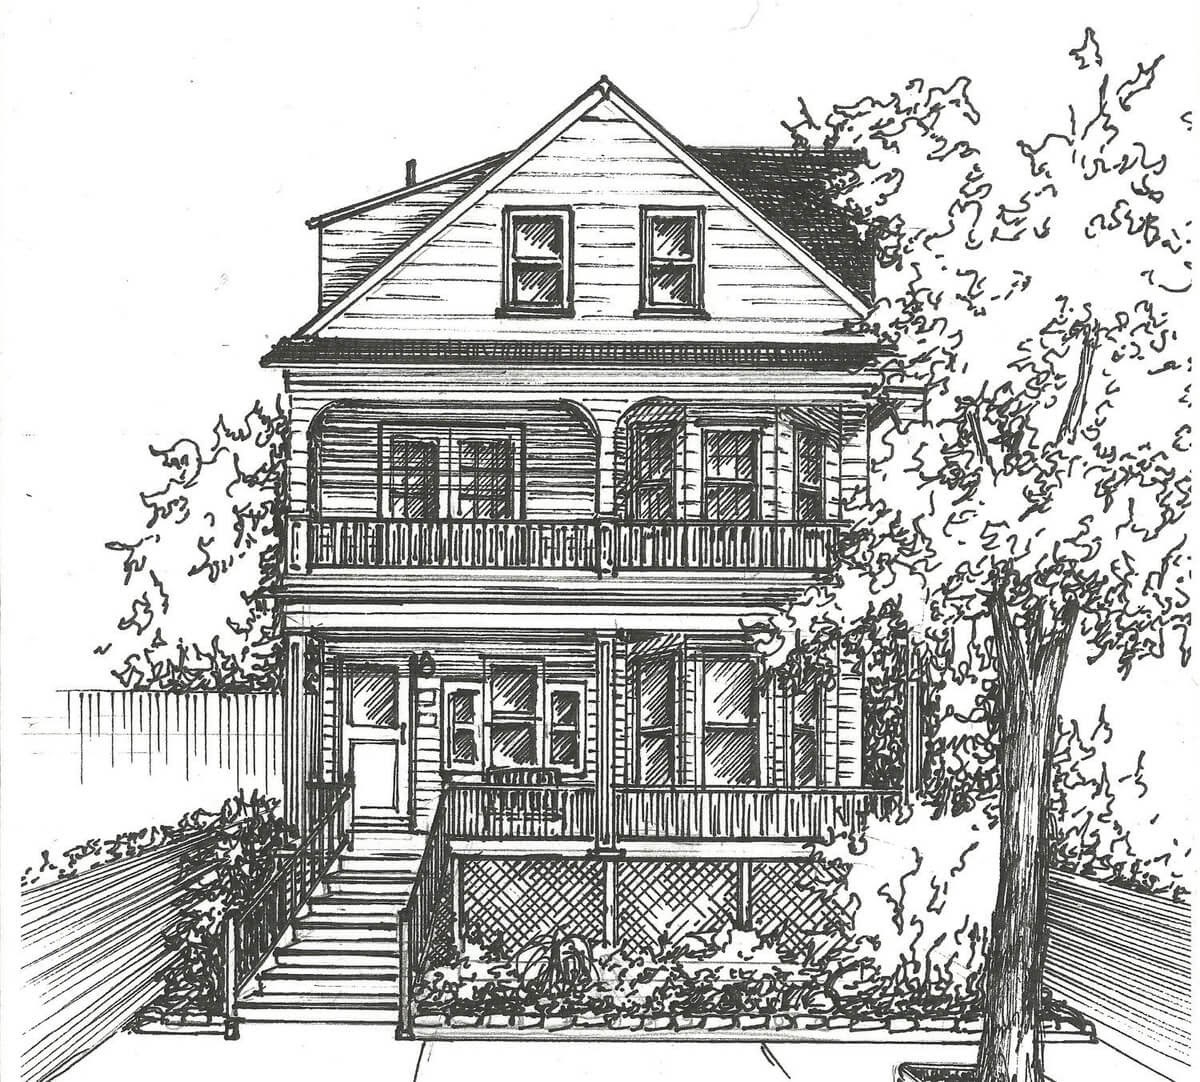 07-Commission-an-Original-Ink-House-Drawing-Mary-Frances-Smith-Architecture-Expressed-in-House-Drawings-www-designstack-co